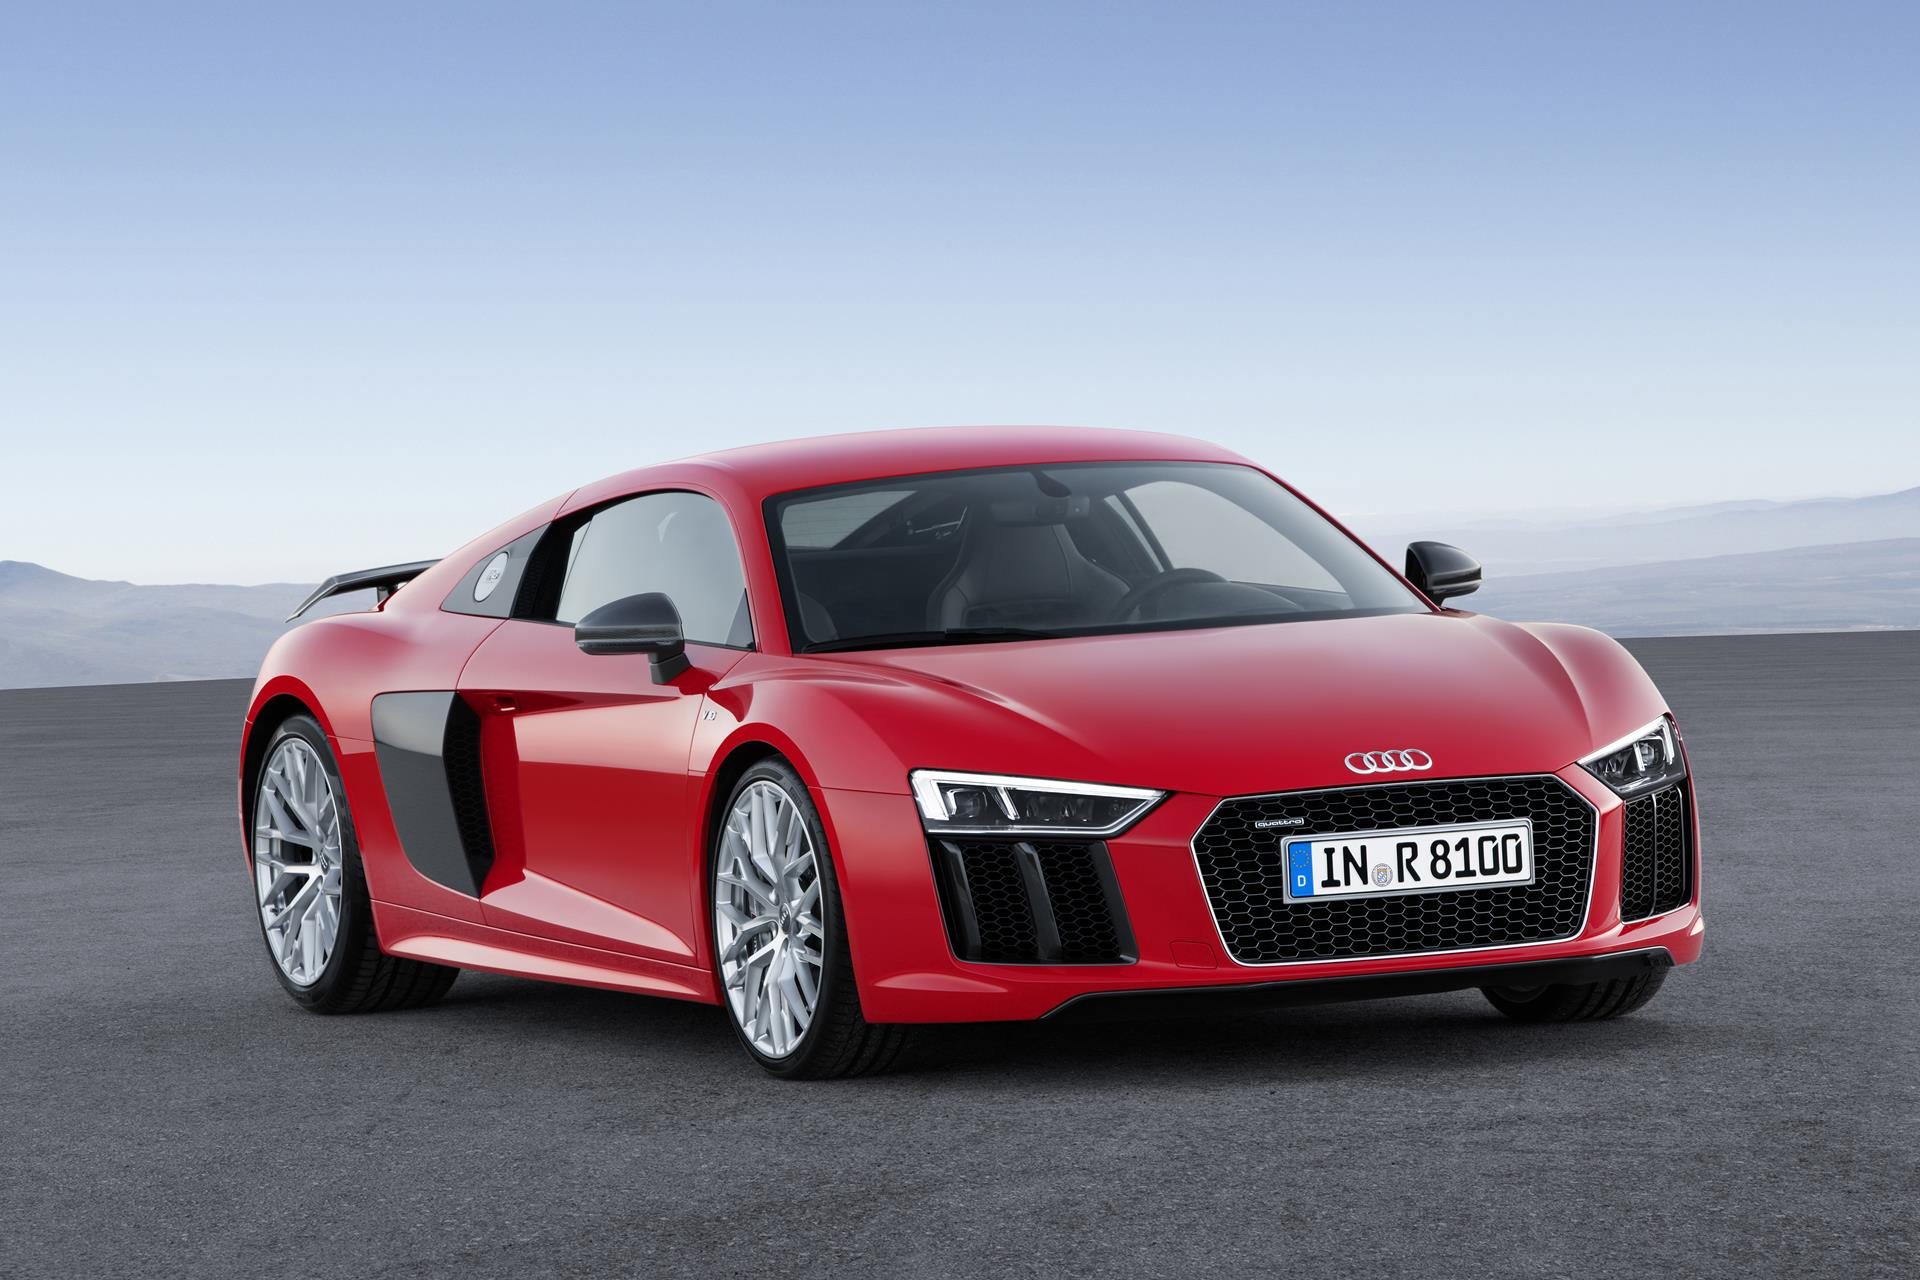 Audi Car Price >> 2016 Audi R8 V10 plus Image. Photo 9 of 15